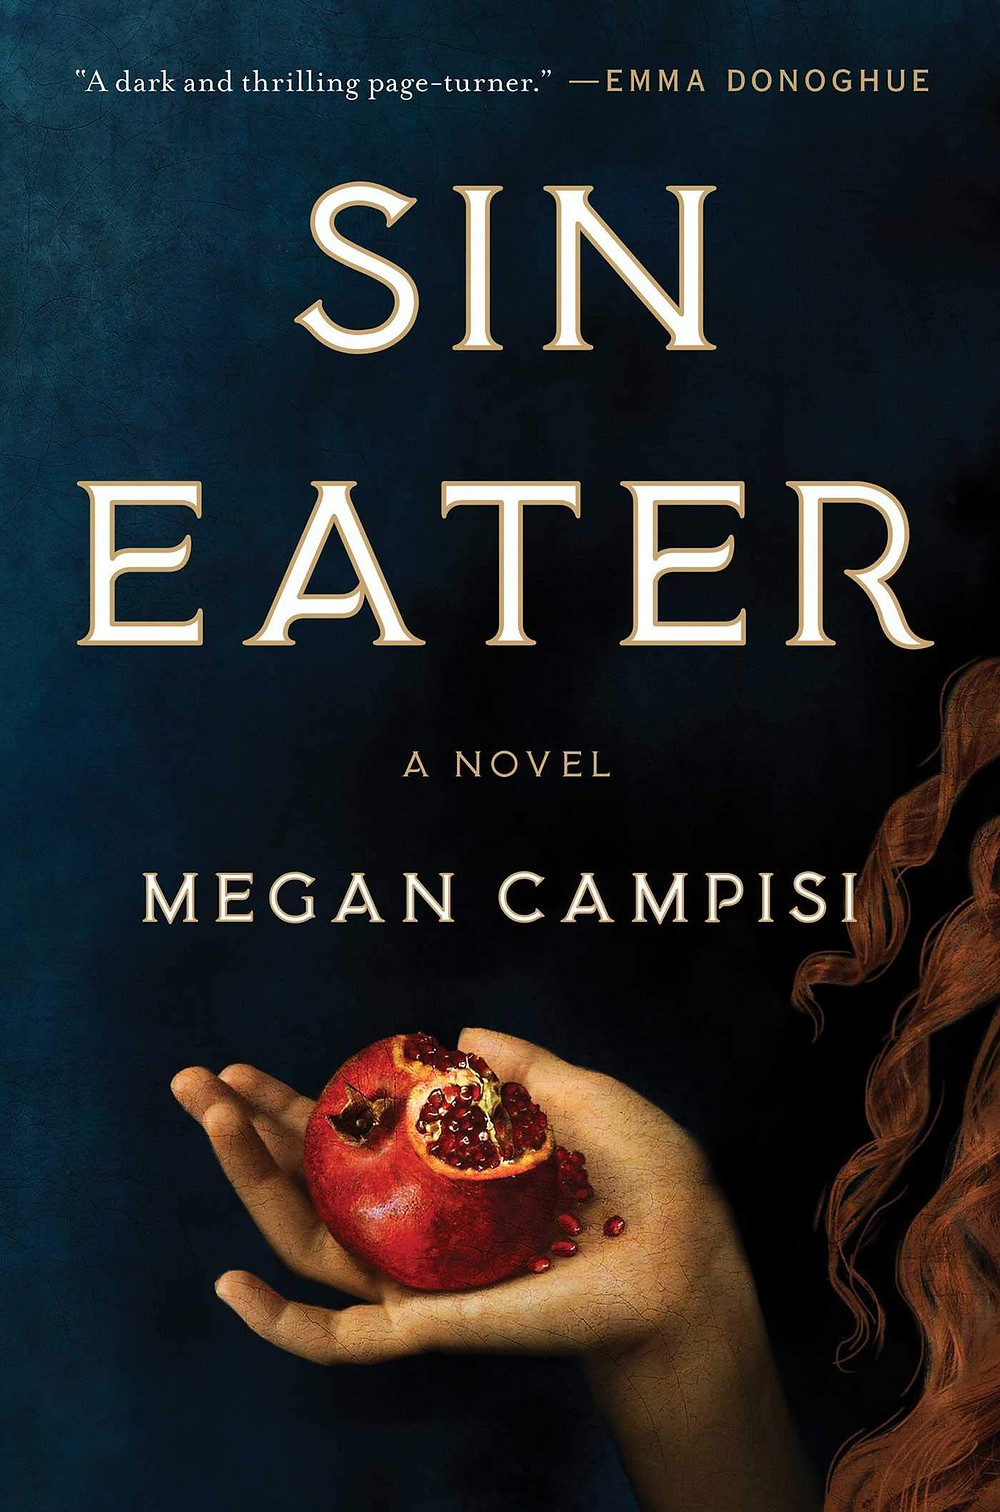 "The Sin Eater by Megan Campisi thebookslut The Handmaid's Tale meets Alice in Wonderland in this gripping and imaginative historical novel about a shunned orphan girl in 16th-century England who is ensnared in a deadly royal plot and must turn her subjugation into her power. The Sin Eater walks among us, unseen, unheard Sins of our flesh become sins of Hers Following Her to the grave, unseen, unheard The Sin Eater Walks Among Us. For the crime of stealing bread, fourteen-year-old May receives a life sentence: she must become a Sin Eater--a shunned woman, brutally marked, whose fate is to hear the final confessions of the dying, eat ritual foods symbolizing their sins as a funeral rite, and thereby shoulder their transgressions to grant their souls access to heaven. Orphaned and friendless, apprenticed to an older Sin Eater who cannot speak to her, May must make her way in a dangerous and cruel world she barely understands. When a deer heart appears on the coffin of a royal governess who did not confess to the dreadful sin it represents, the older Sin Eater refuses to eat it. She is taken to prison, tortured, and killed. To avenge her death, May must find out who placed the deer heart on the coffin and why. ""A keenly researched feminist arc of unexpected abundance, reckoning, intellect, and ferocious survival"" (Maria Dahvana Headley, author of The Mere Wife) Sin Eater is ""a dark, rich story replete with humor, unforgettable characters, and arcane mysteries. It casts a spell on your heart and mind until the final page"" (Jennie Melamed, author of Gather the Daughters). Product Details Price: $27.00  $24.30 Publisher: Atria Books Published Date: April 07, 2020 Pages: 304 Dimensions: 6.0 X 1.3 X 9.4 inches 